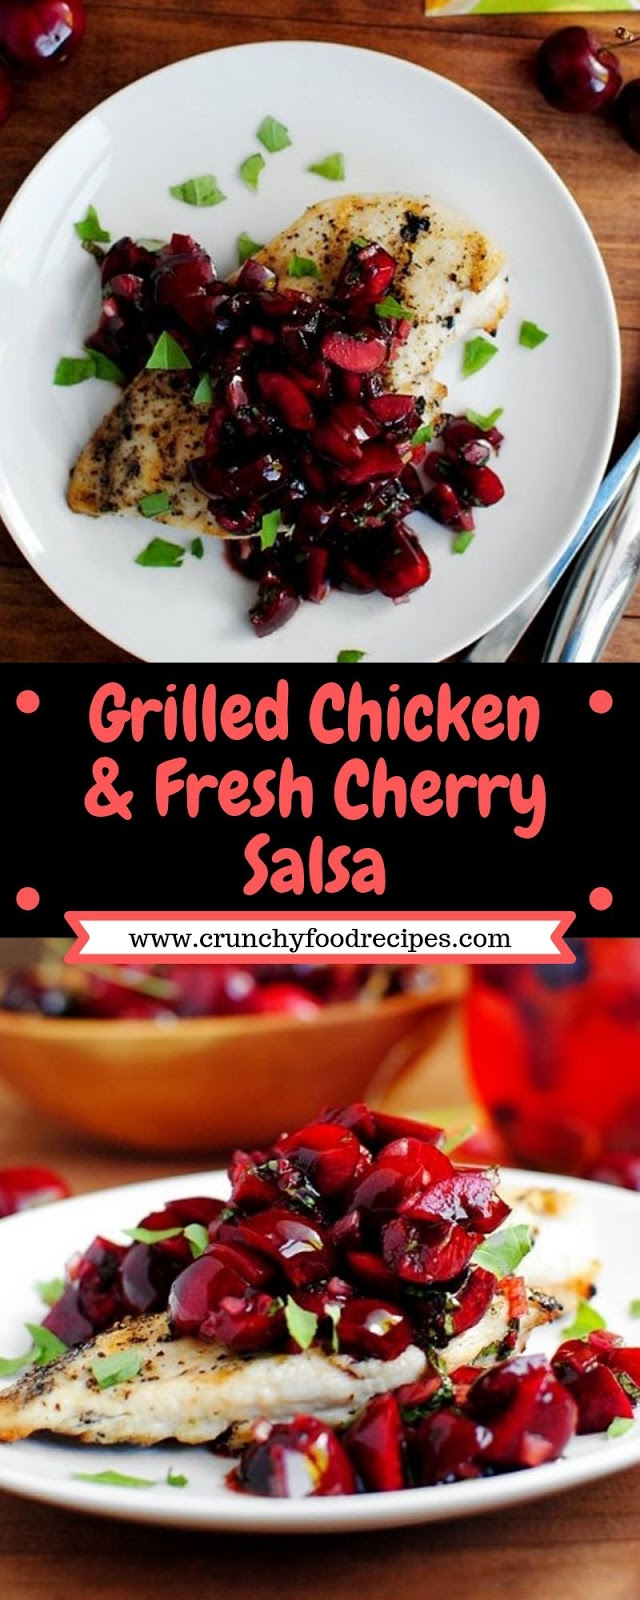 Grilled Chicken & Fresh Cherry Salsa